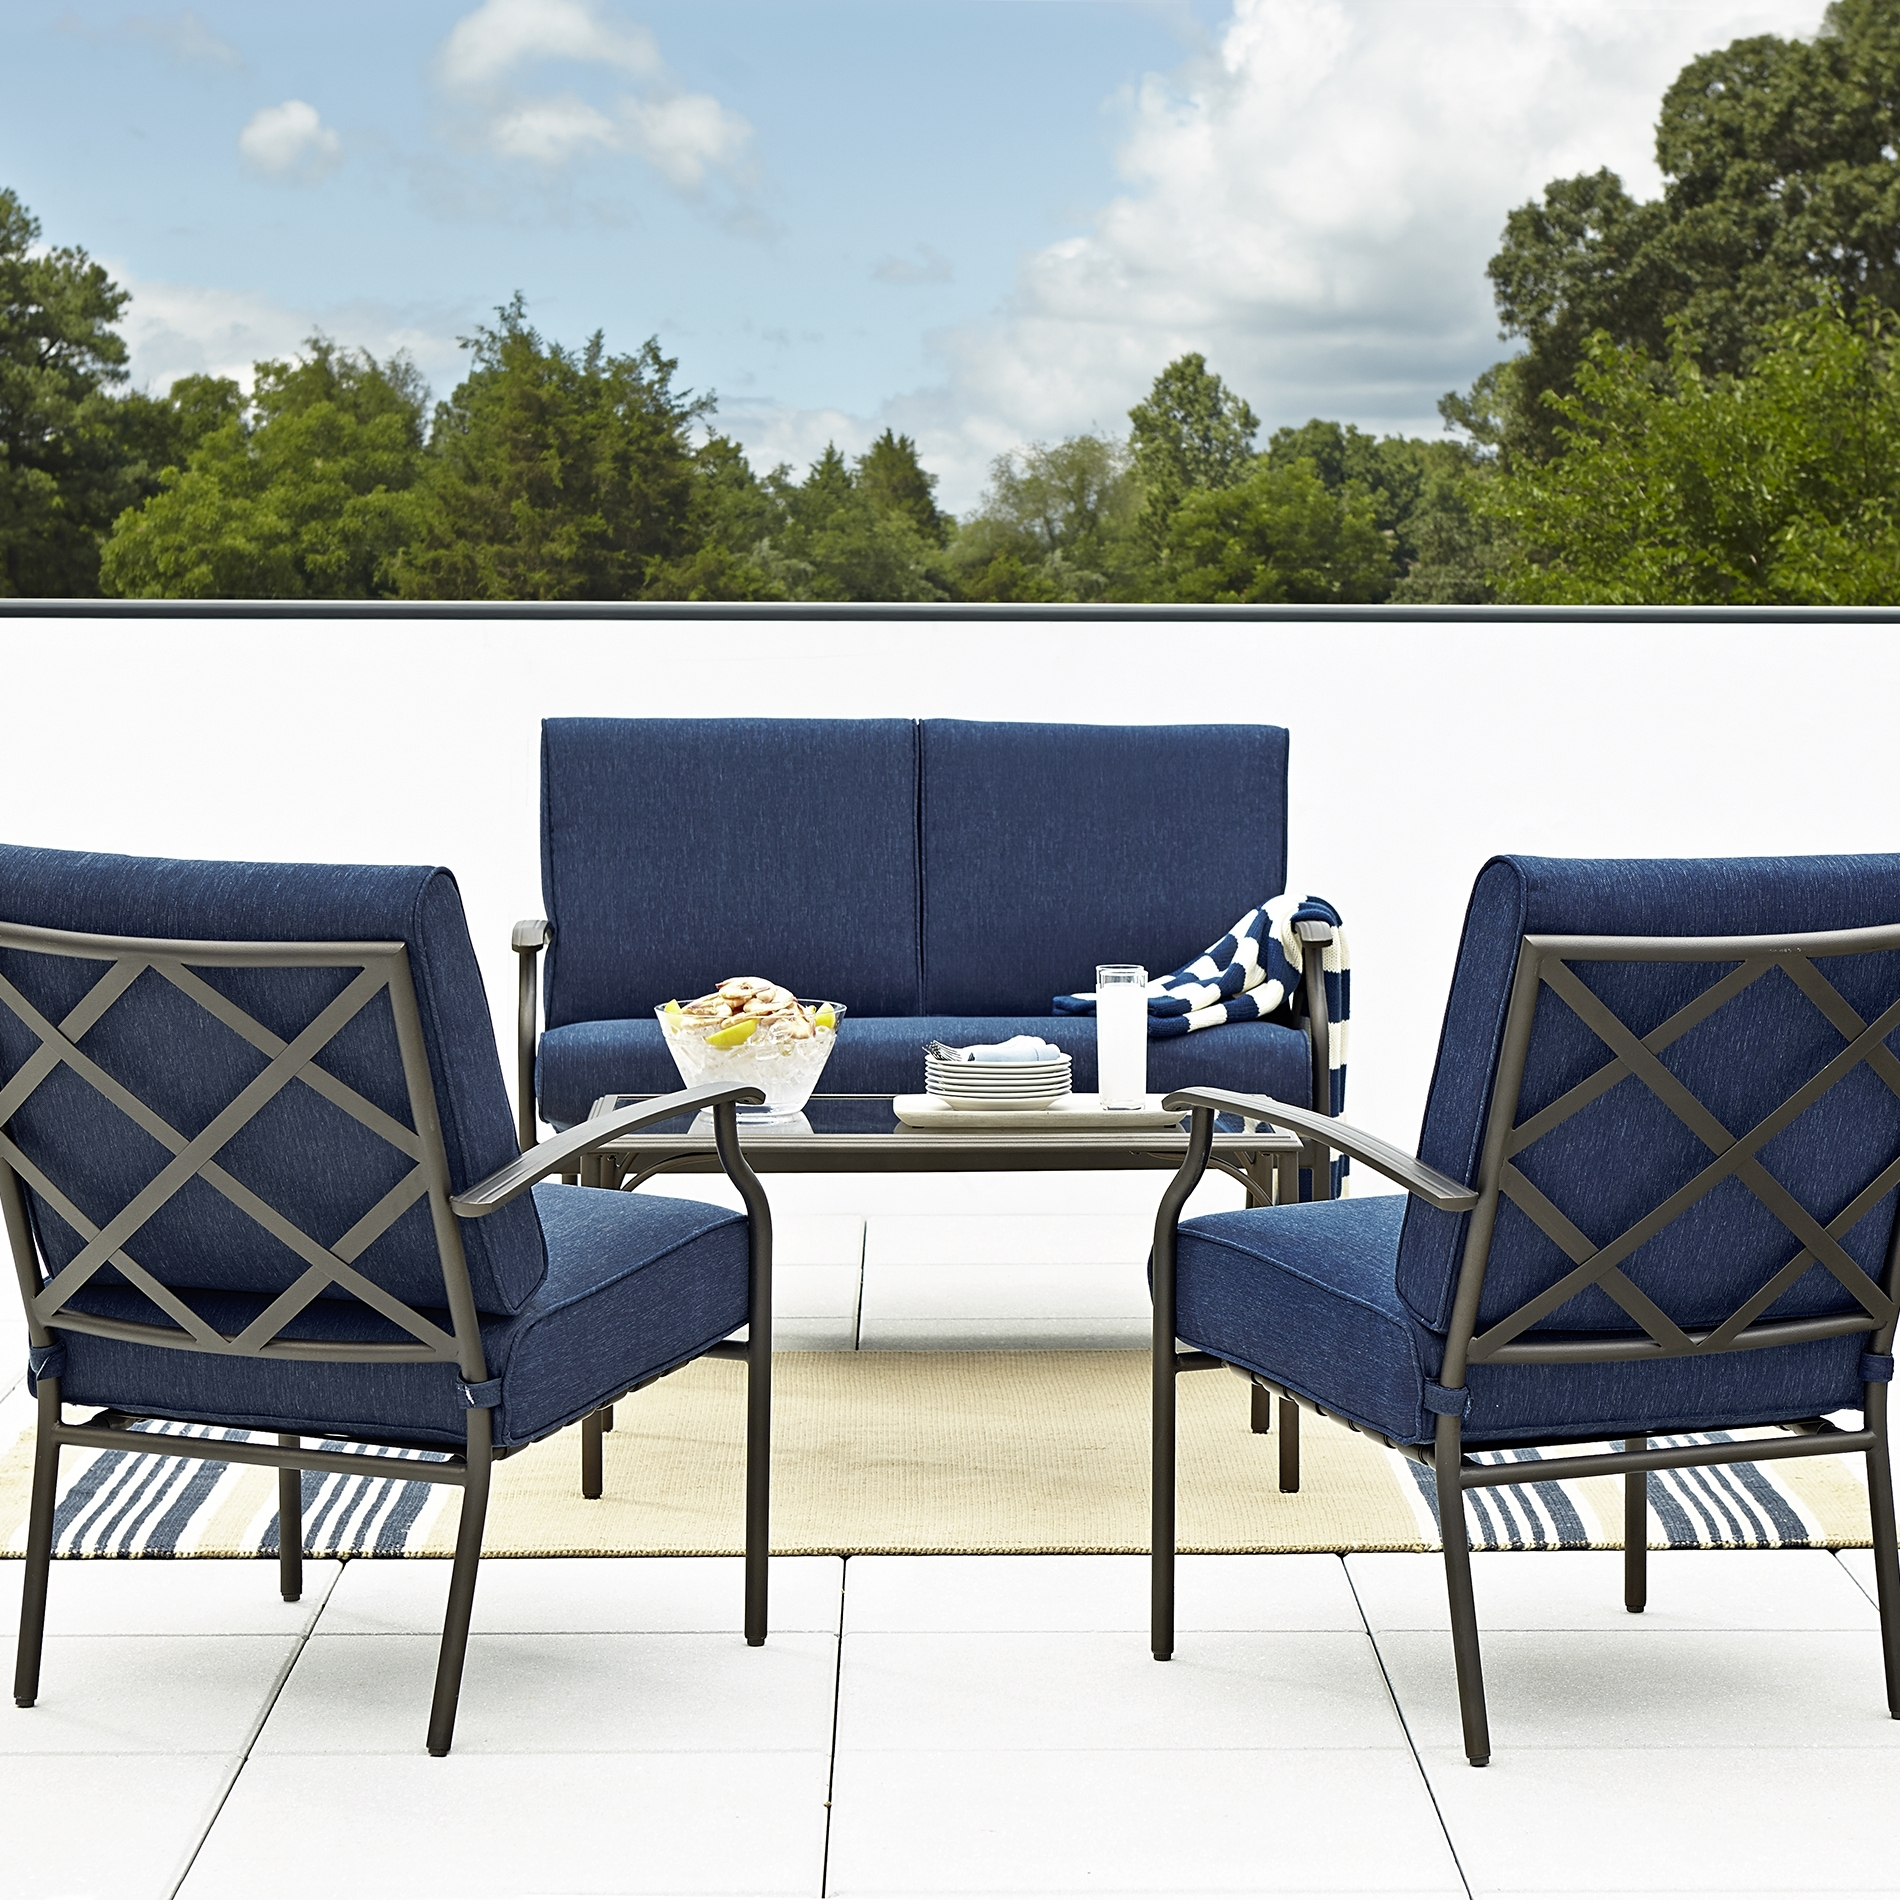 Sears Outdoor Furniture (View 12 of 20)